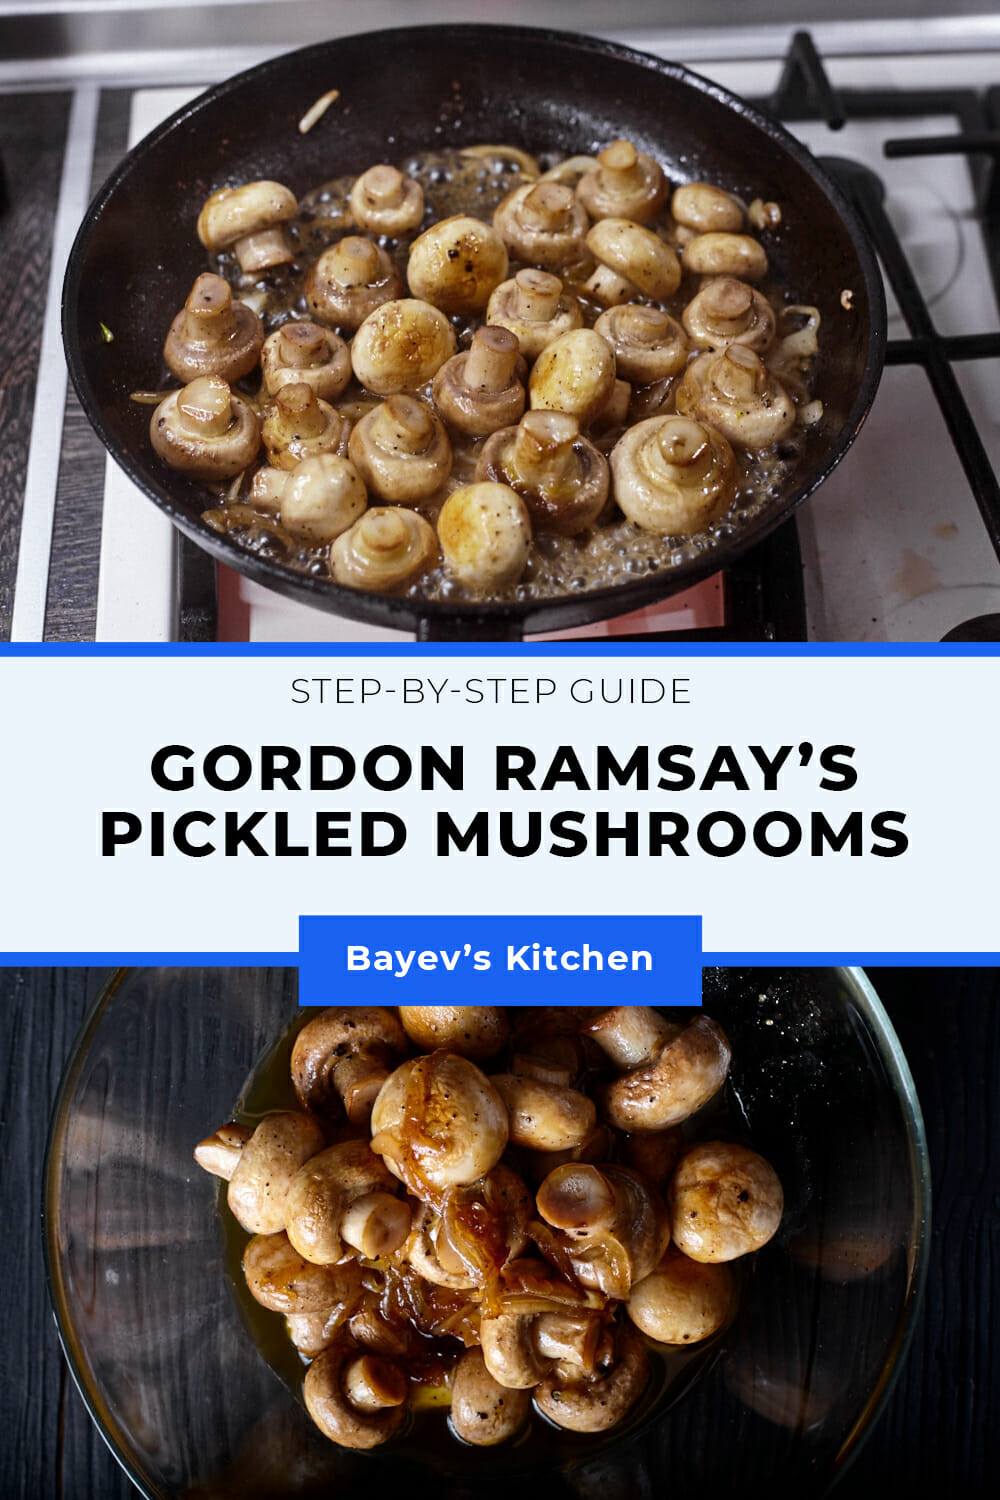 This recipe is a simplified version of Gordon Ramsay's dish. If you're not a fan of pickled mushrooms in jars because of their intense vinegar smell, you should certainly try this recipe. The mushrooms turn out very gentle, a bit sweet but with little sourness.  You can serve them at once while hot, but of course, it's better to let them steep: from a few hours to 4 days. It's very convenient when you have some sort of feast - prepare them a few days earlier and leave in the fridge.  This way they'll have a better taste and secondly, there will be less of a fuss on the party day. And also if somebody arrives earlier, you could treat one with this snack.